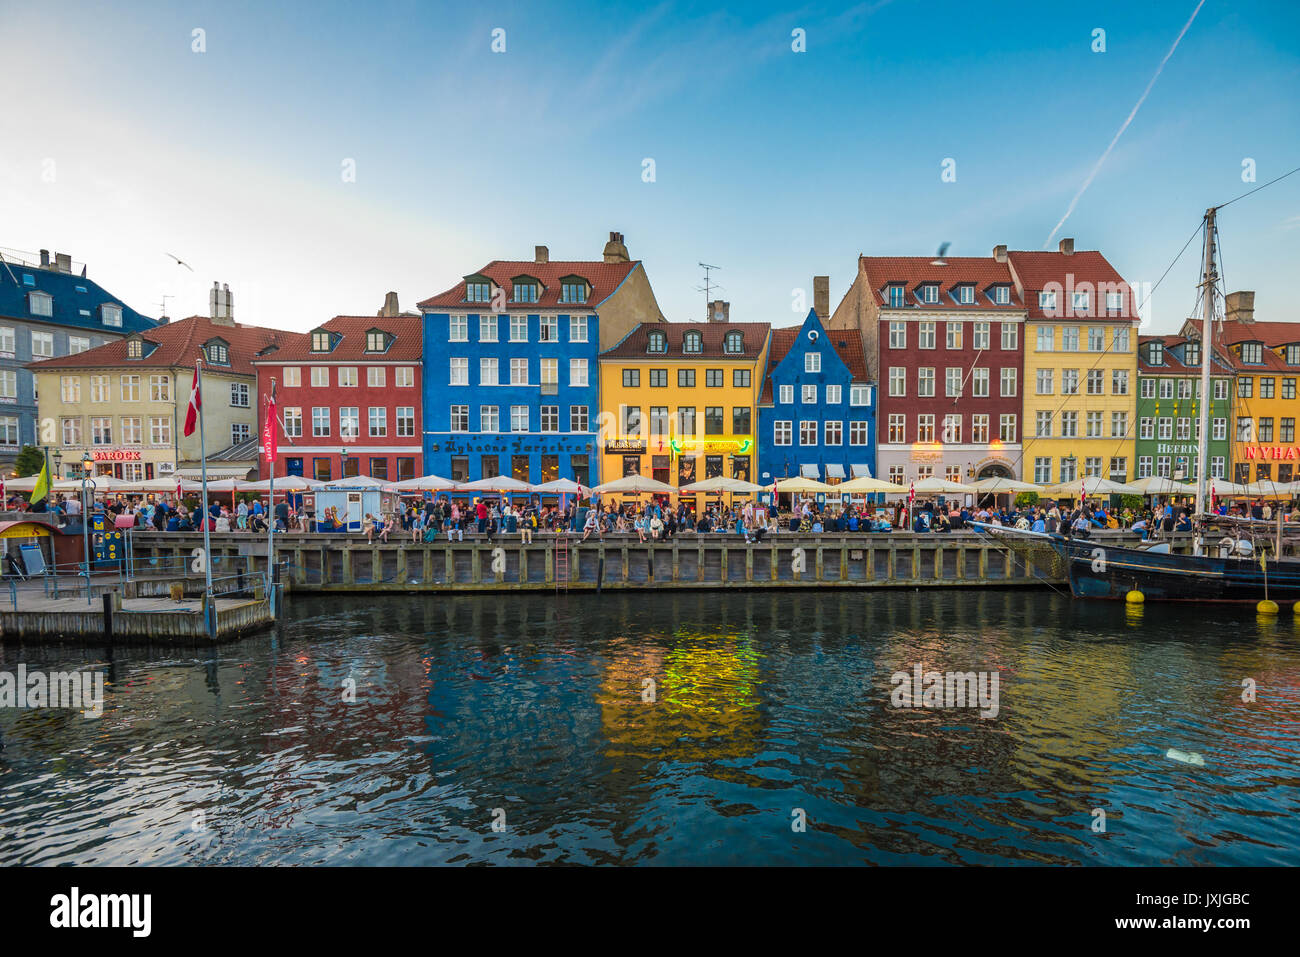 Nyhavn district is one of the most famous landmarks in Copenhagen, Denmark - Stock Image